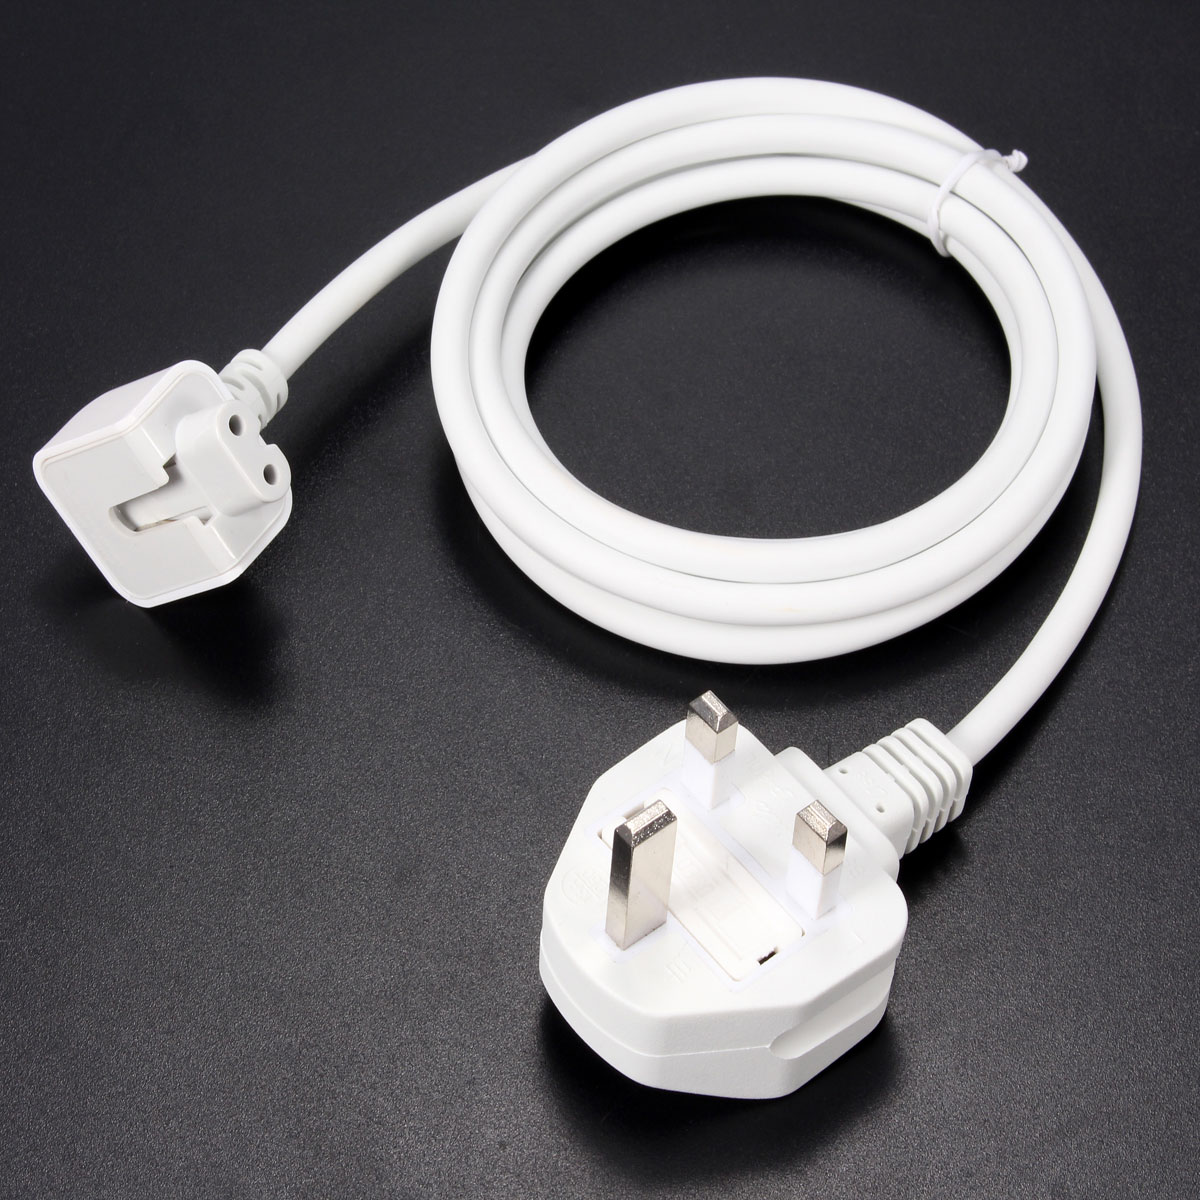 Us Eu Au Uk Plug Extension Cable Cord For Apple Macbook